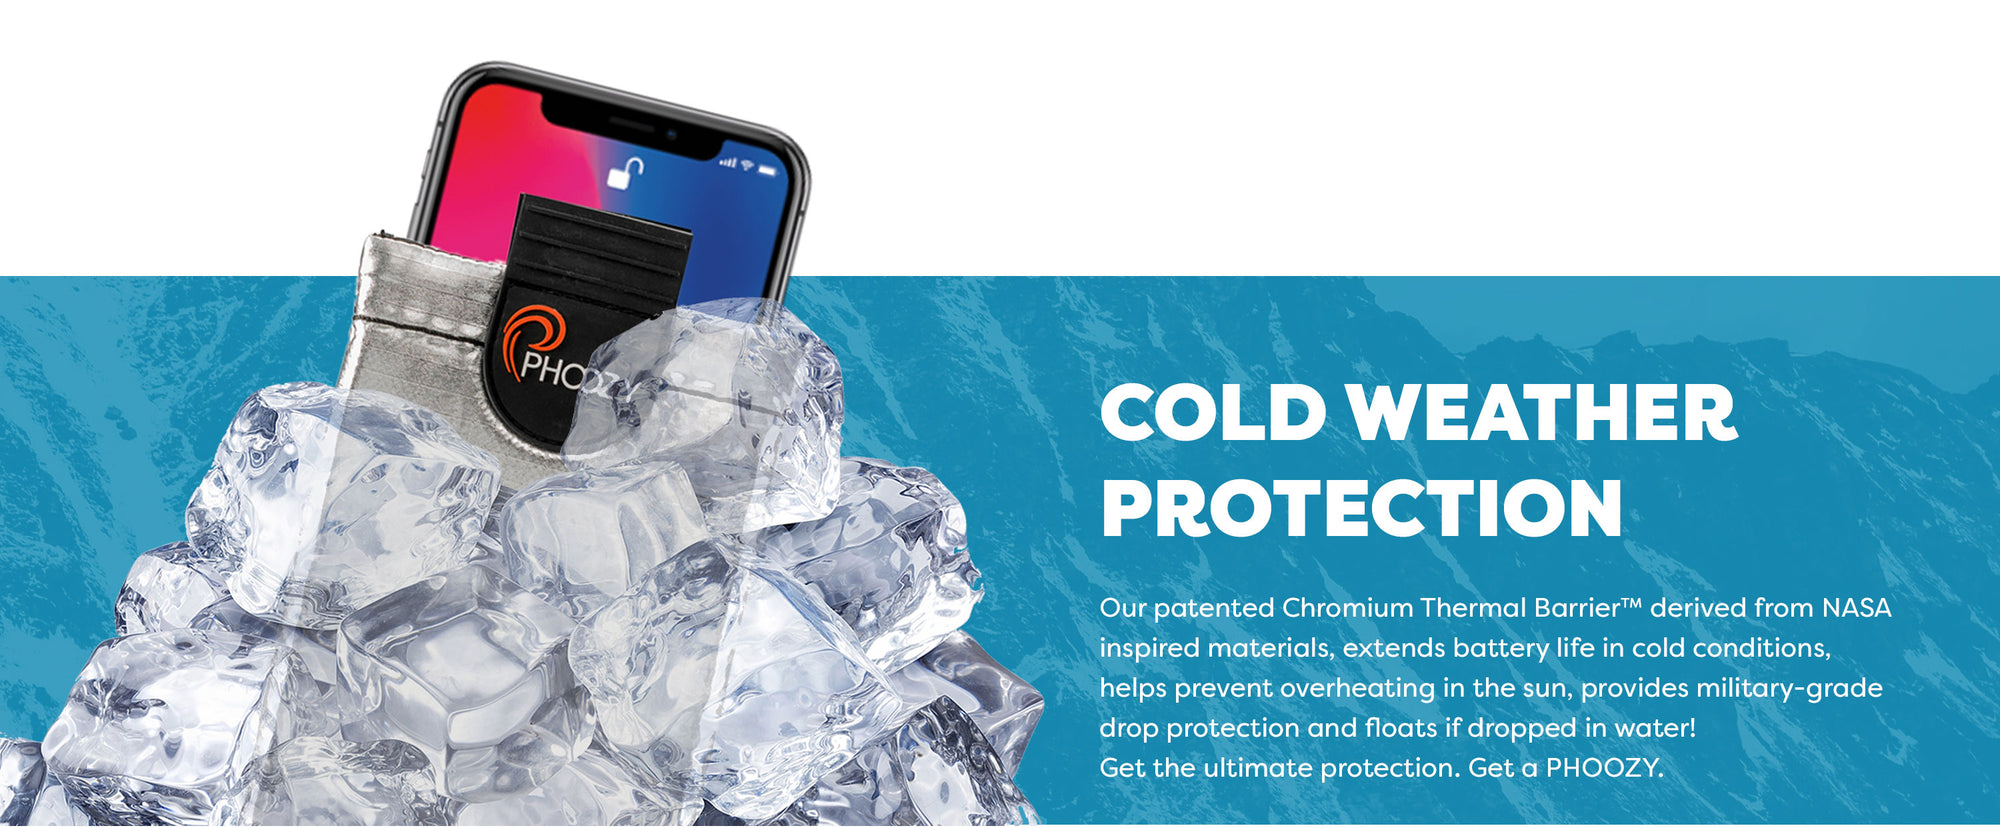 Ultimate cold weather protection for your phone